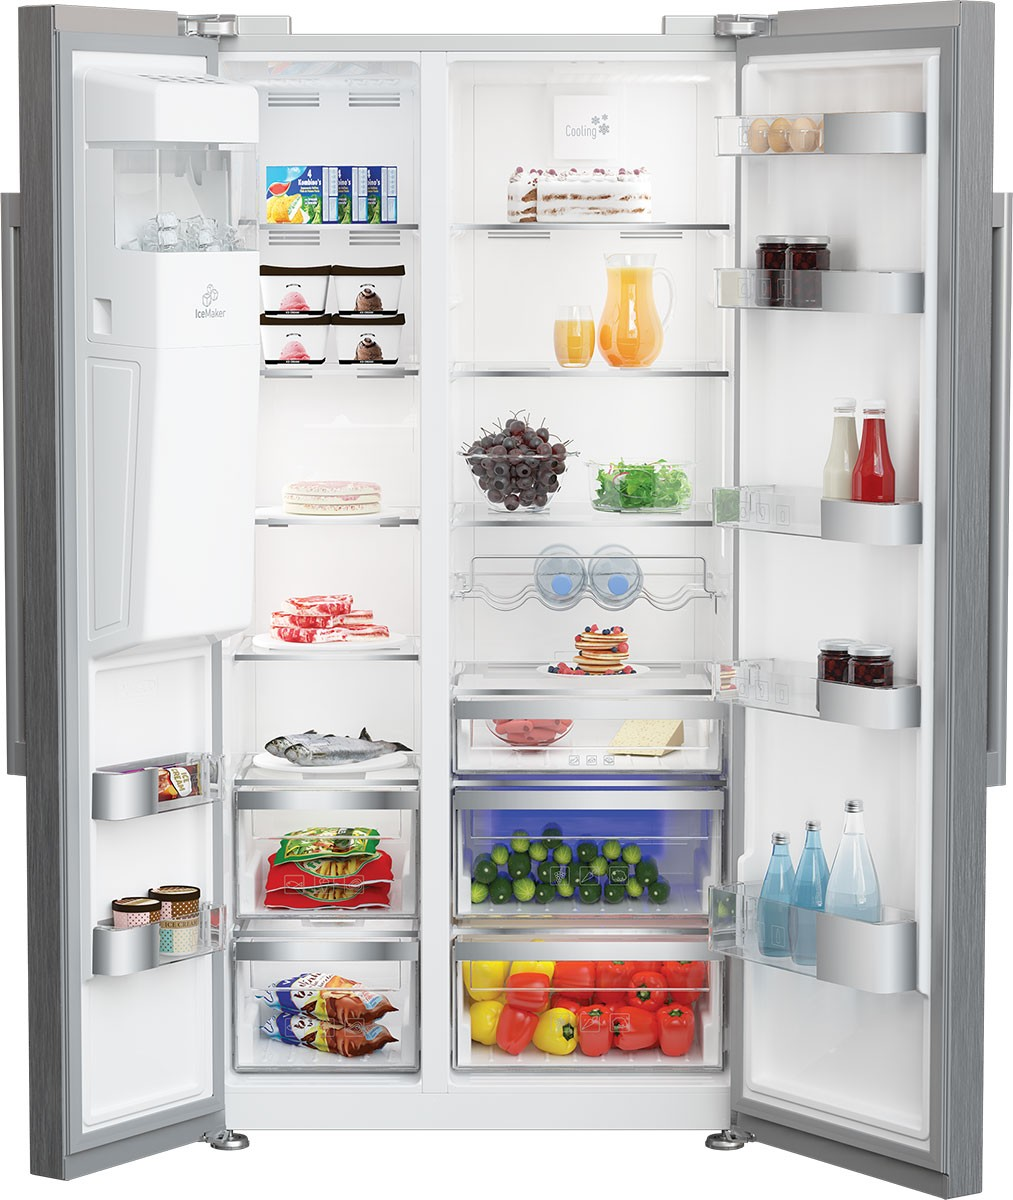 Model: BSBS2230SS | 36 Inch Counter Depth Side-by-Side Refrigerator